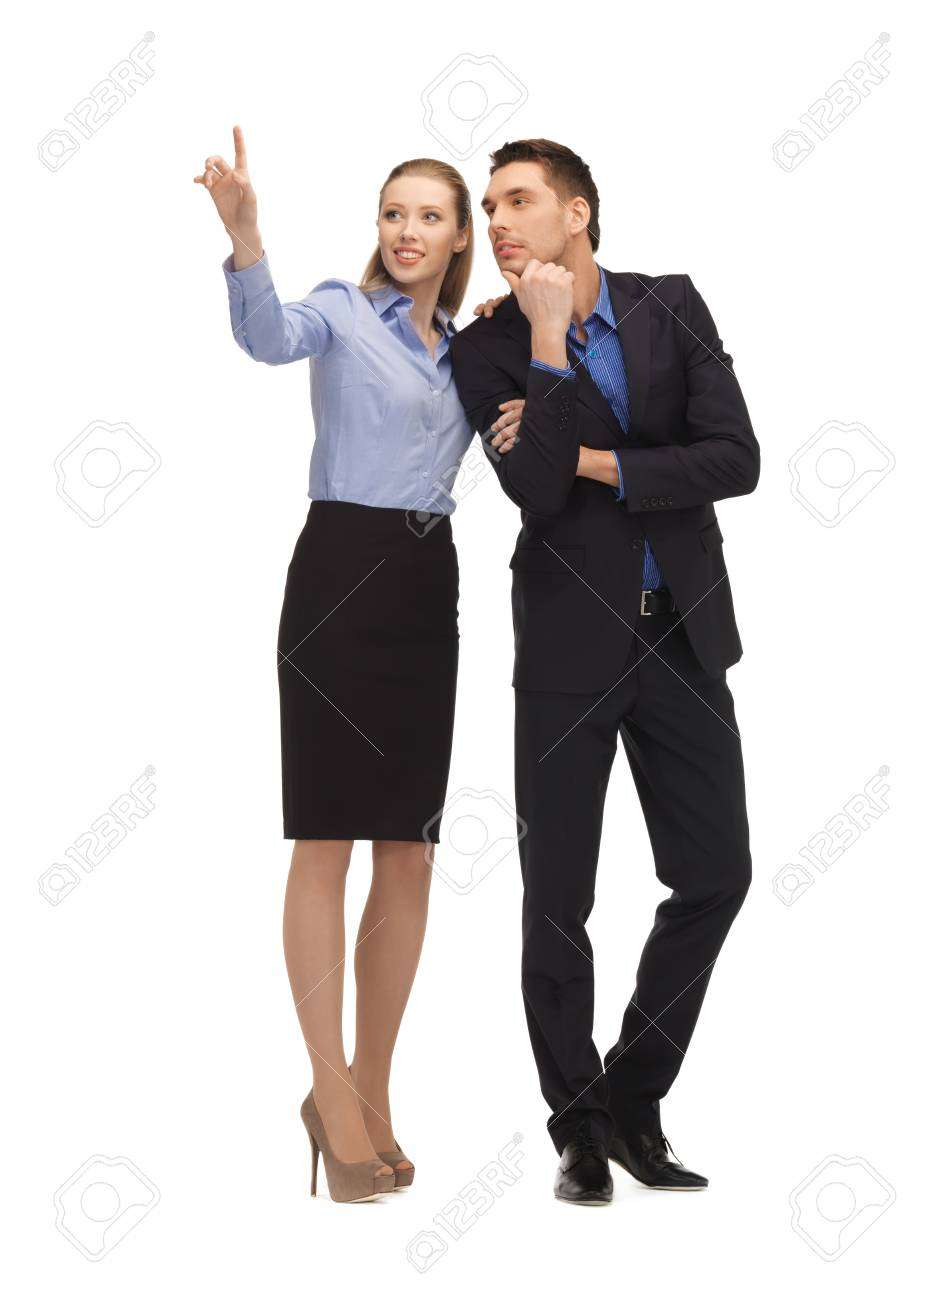 picture of man and woman working with something imaginary Stock Photo - 17038634